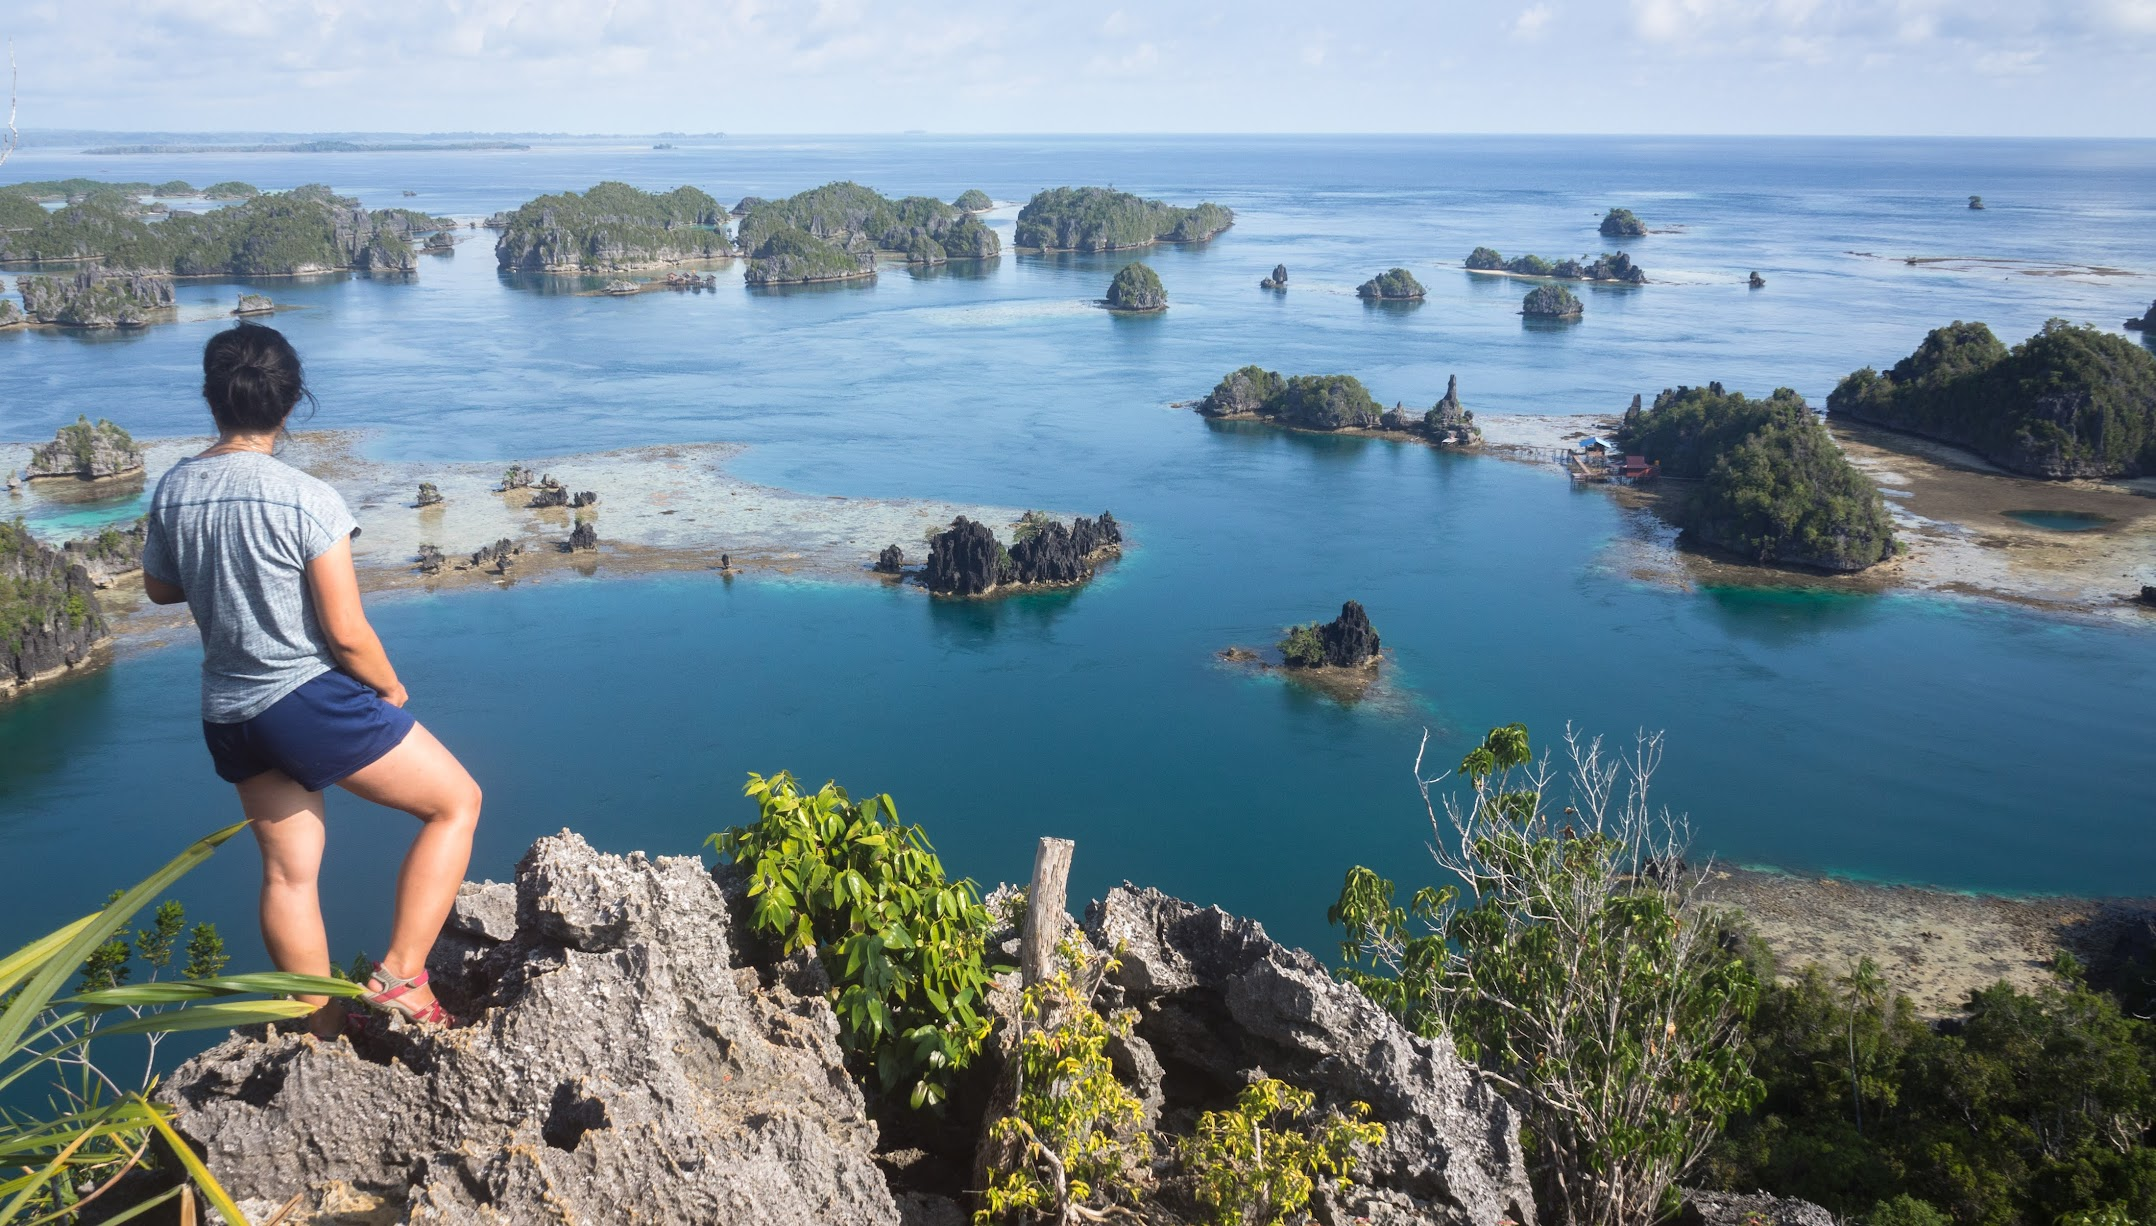 View of small islets in Raja Ampat